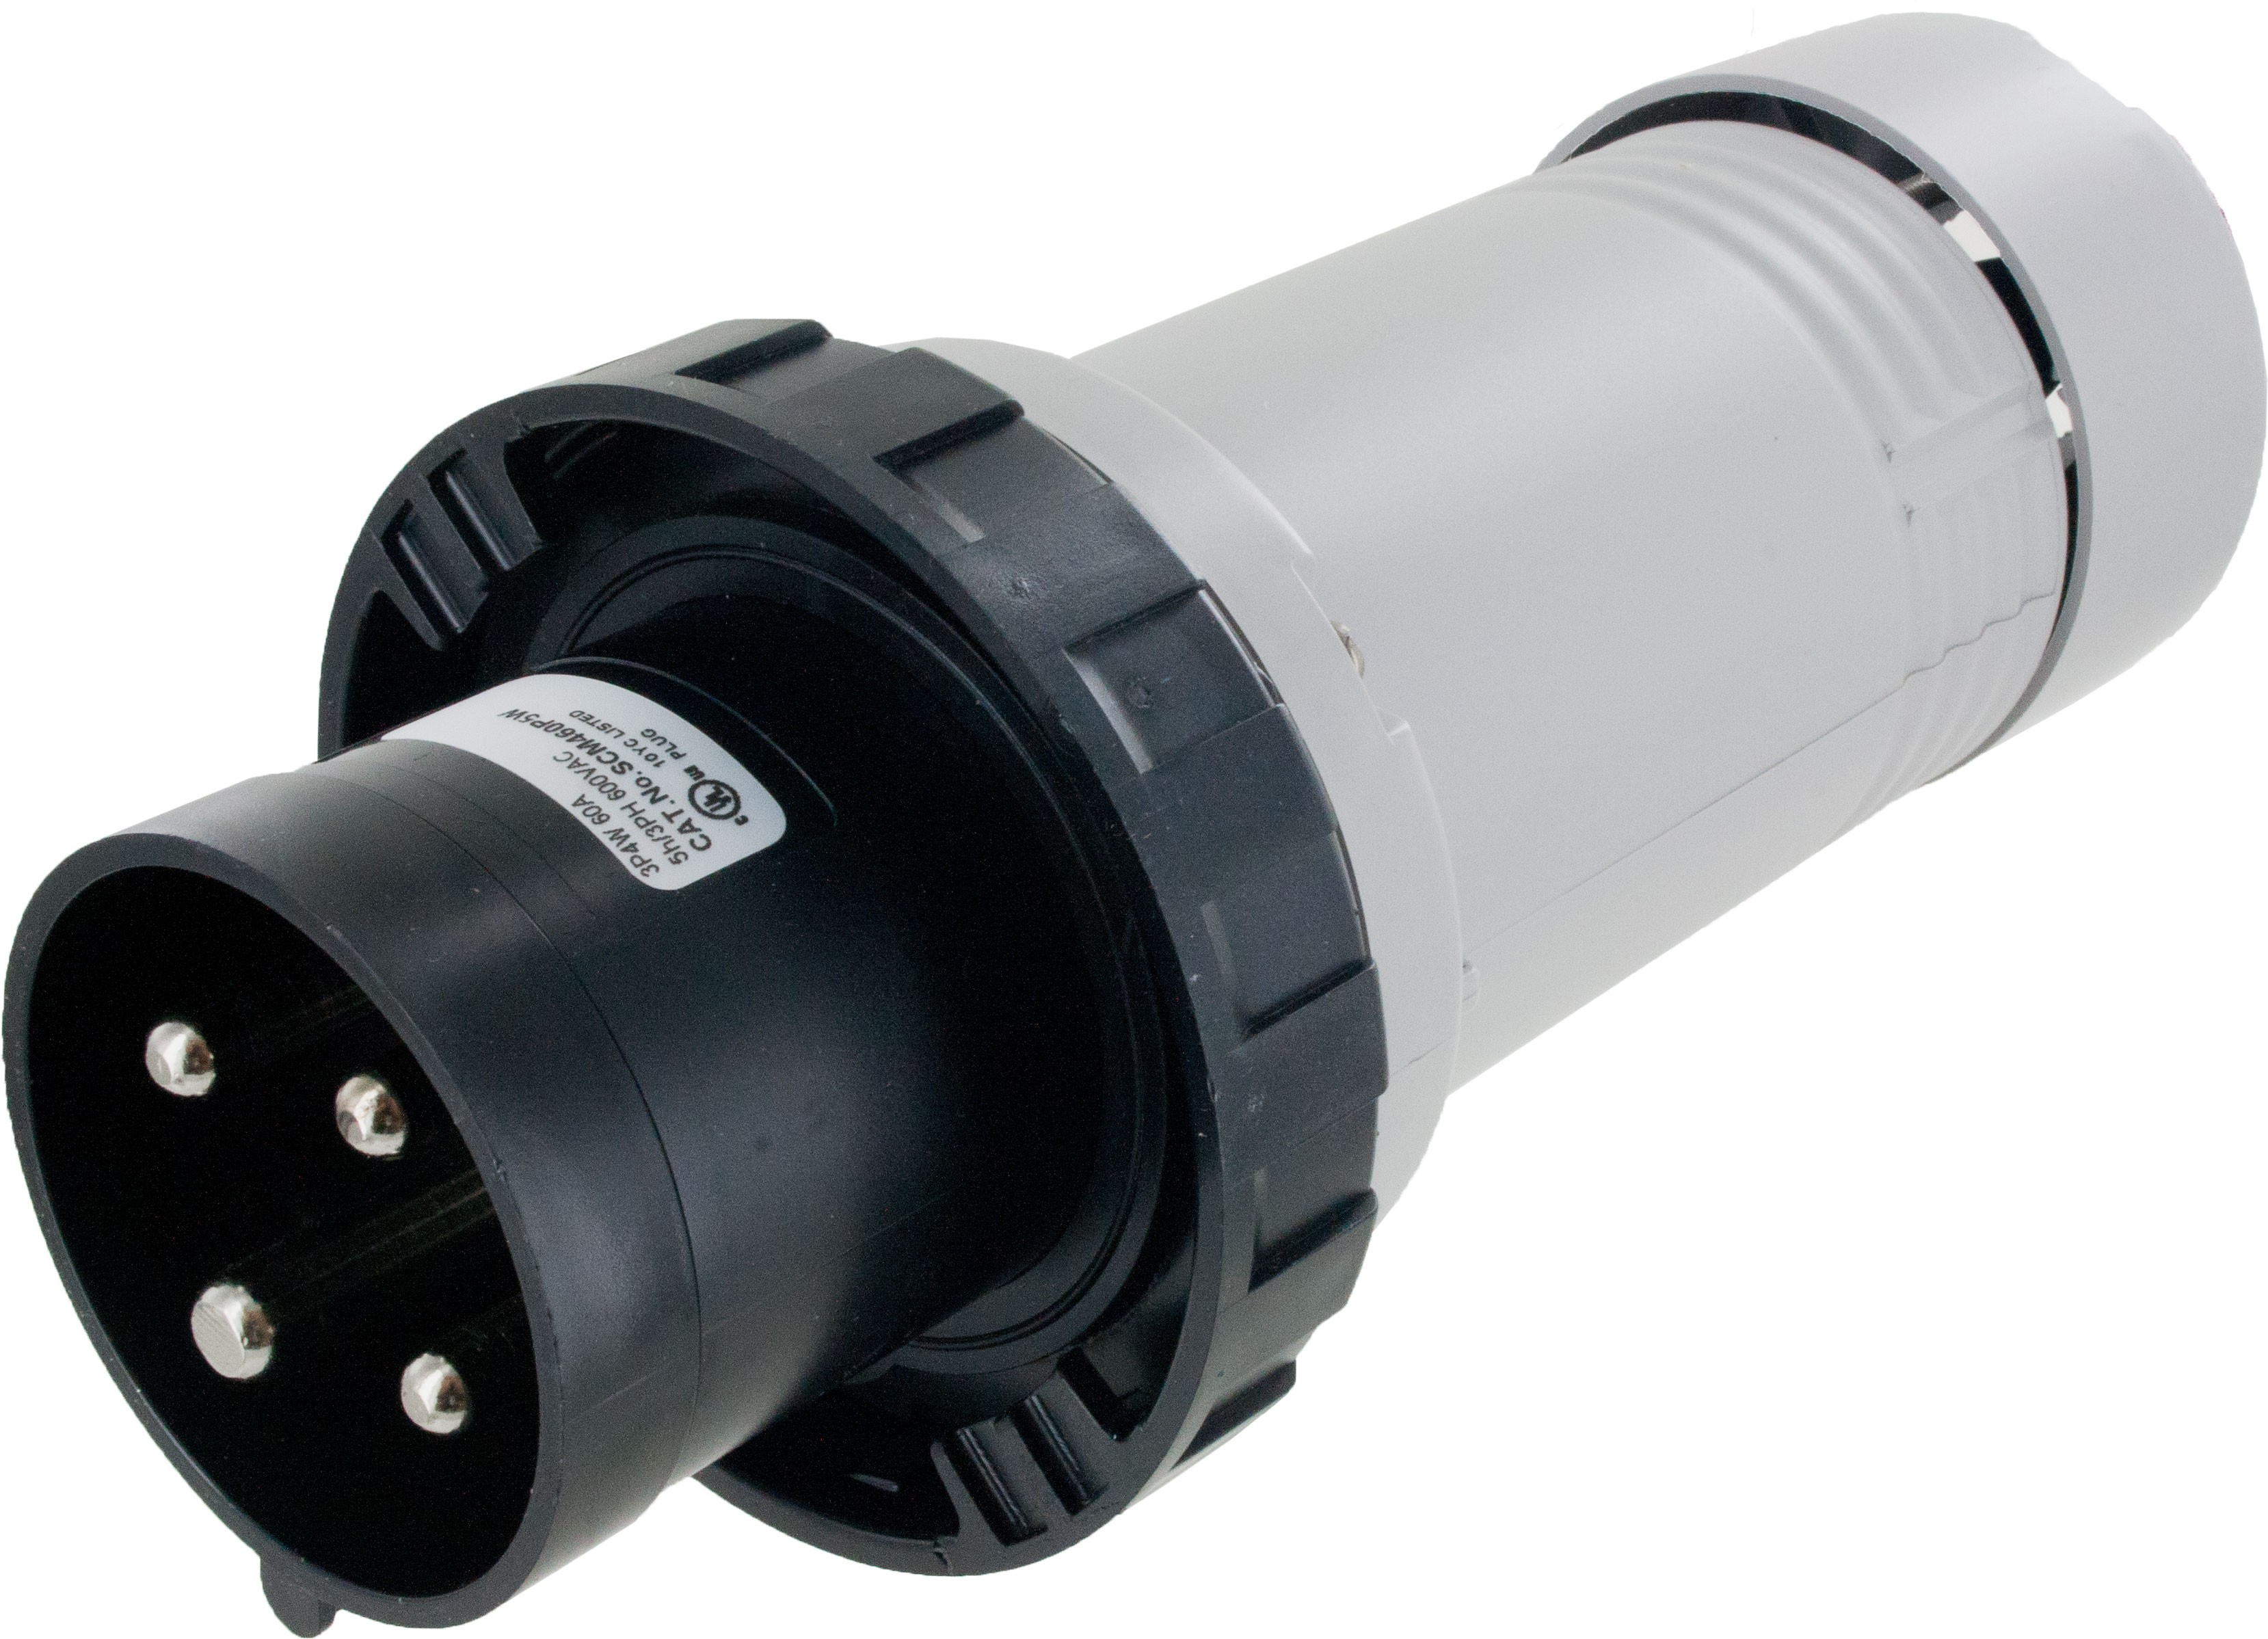 460P5W Pin And Sleeve Plug 60 Amp 3 Pole 4 Wire | ElecDirect